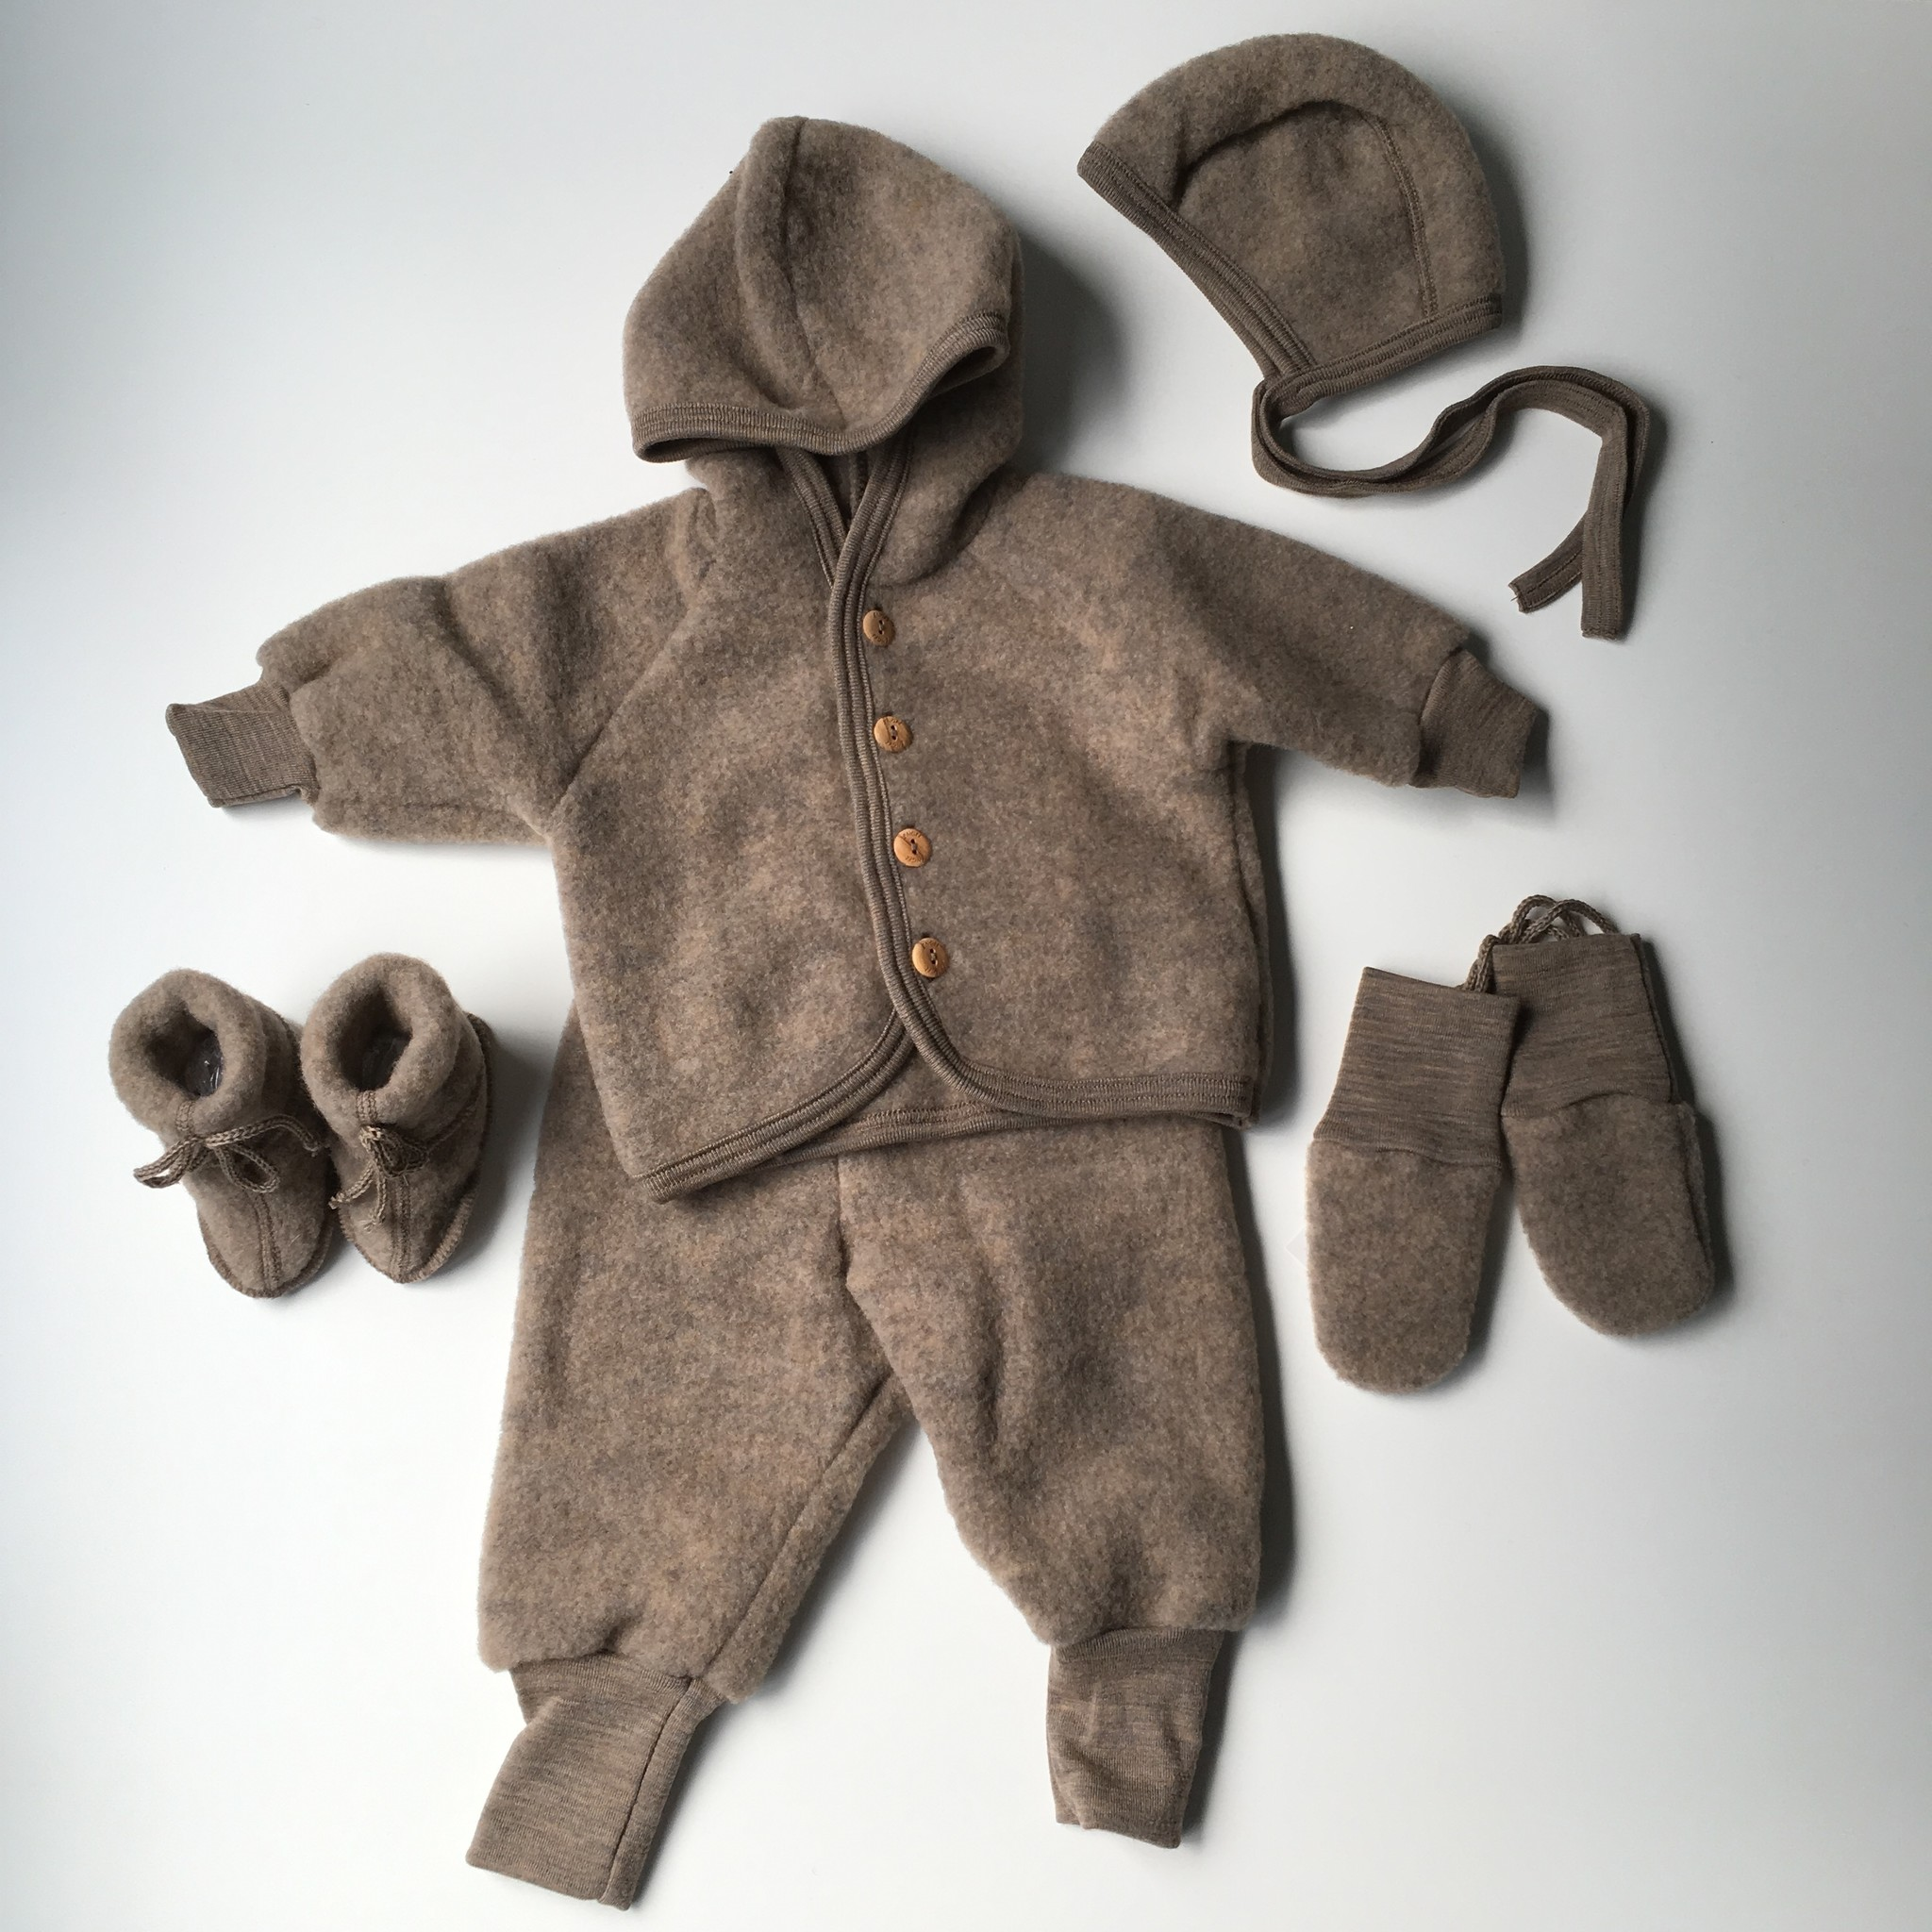 Engel Natur Woolen Baby Jacket Merino Fleece Walnut Brown Truly Wooly Kids Feelgood Childrenswear